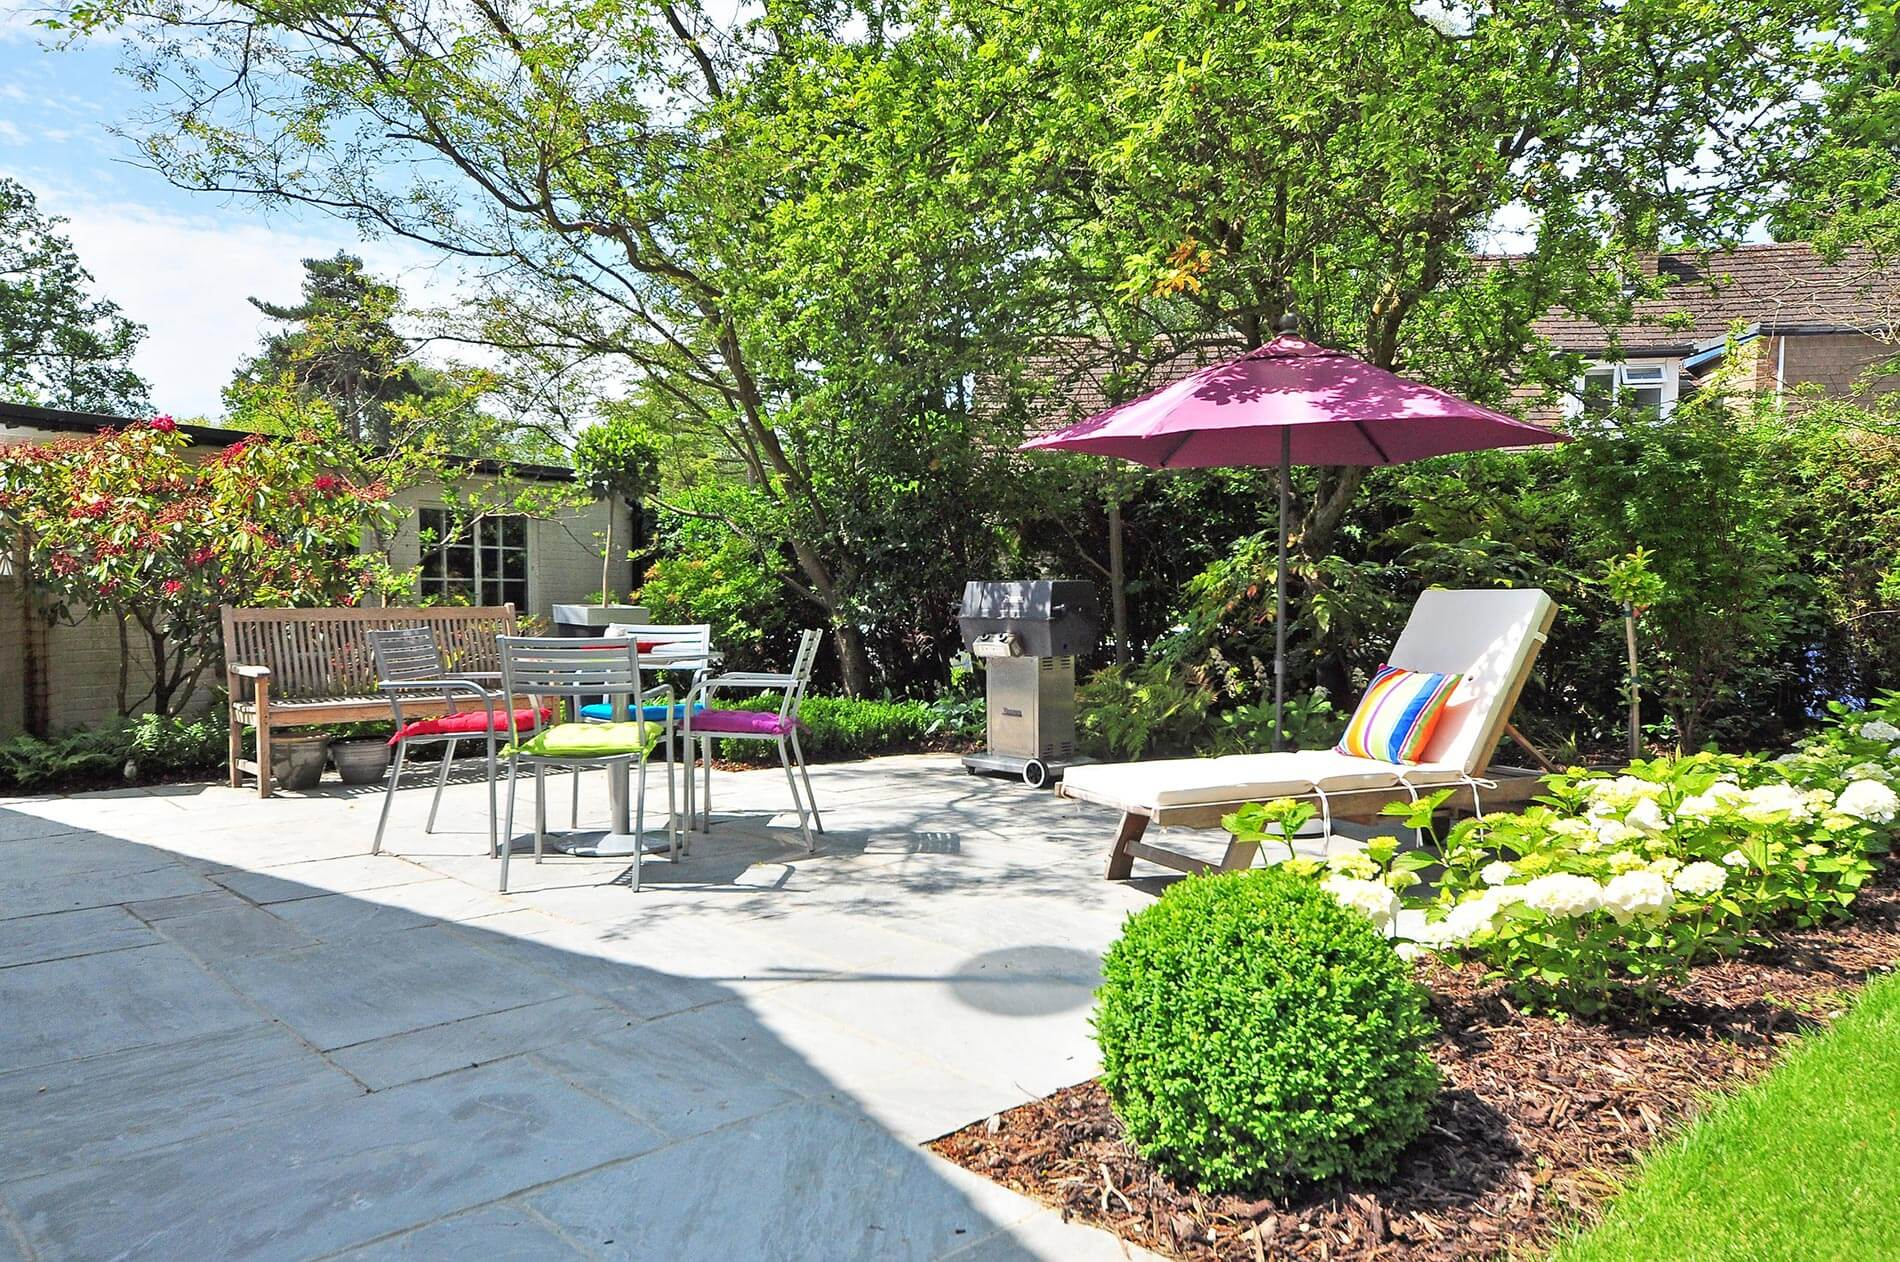 Patio Laying: Image of a garden with a paved patio area.